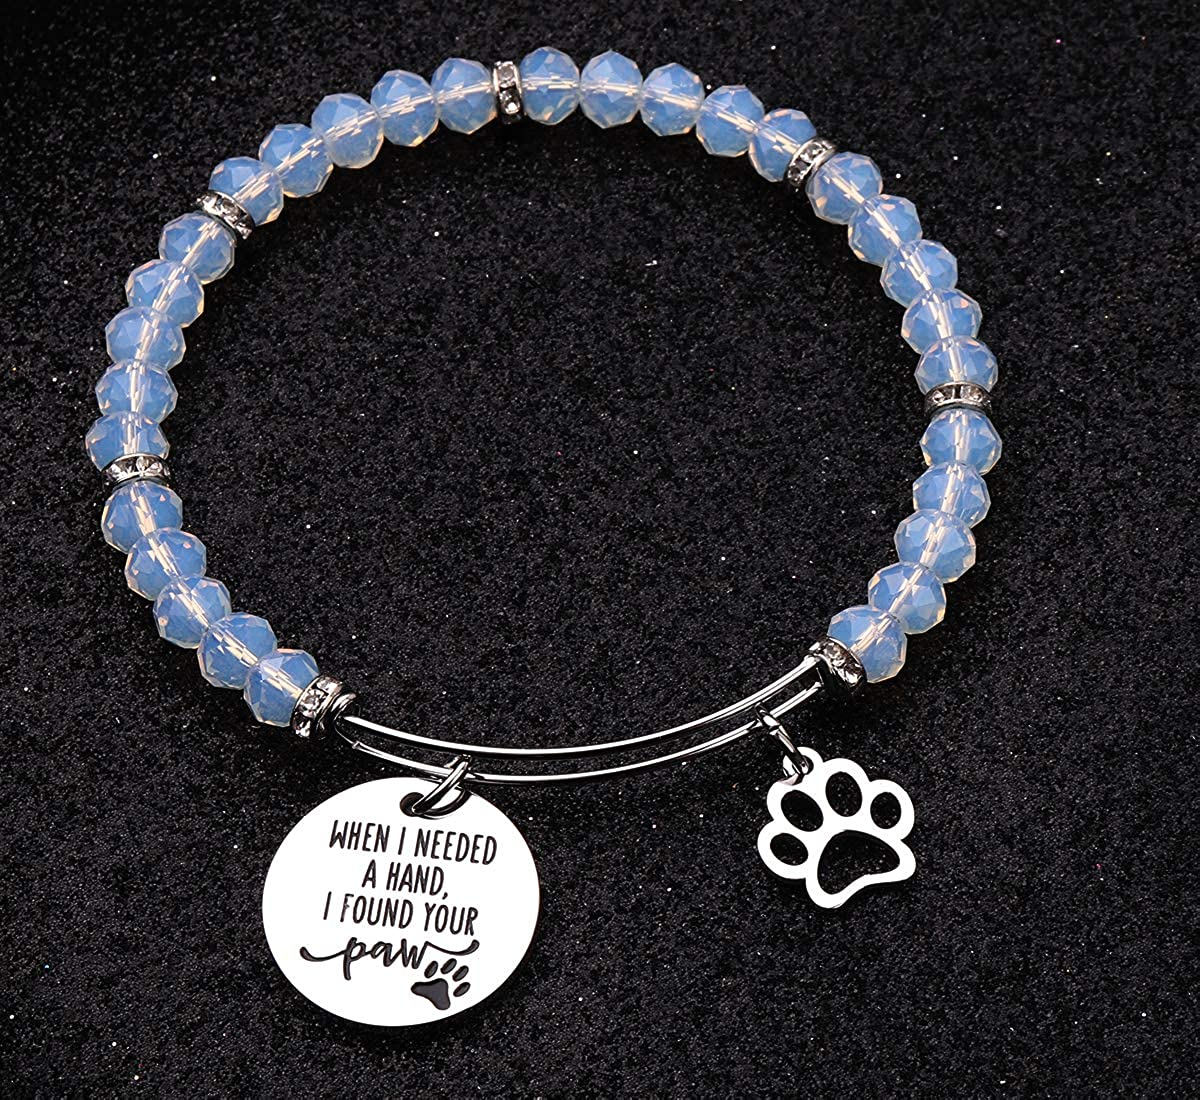 AZFEIYA Pet Lovers Gift When I Needed A Hand I Found Your Paw 3 Colors Beads Bracelet